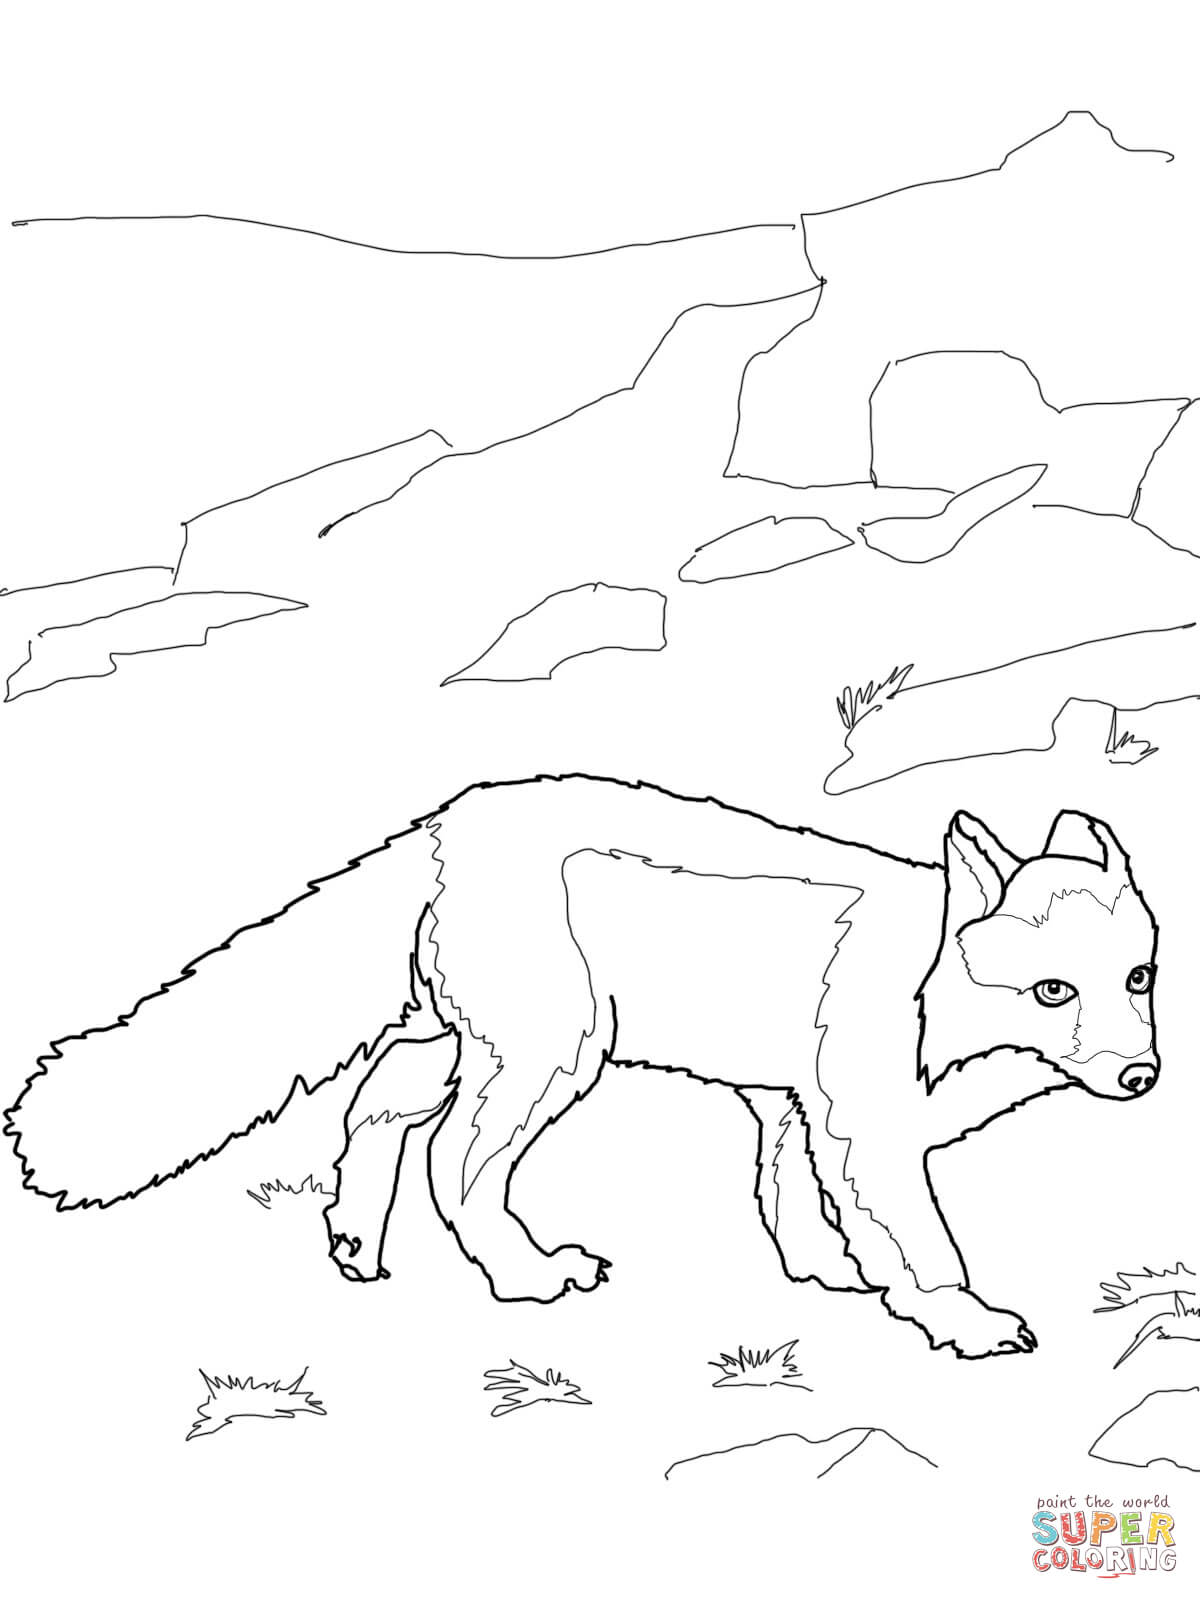 Download Polar Fox Coloring For Free